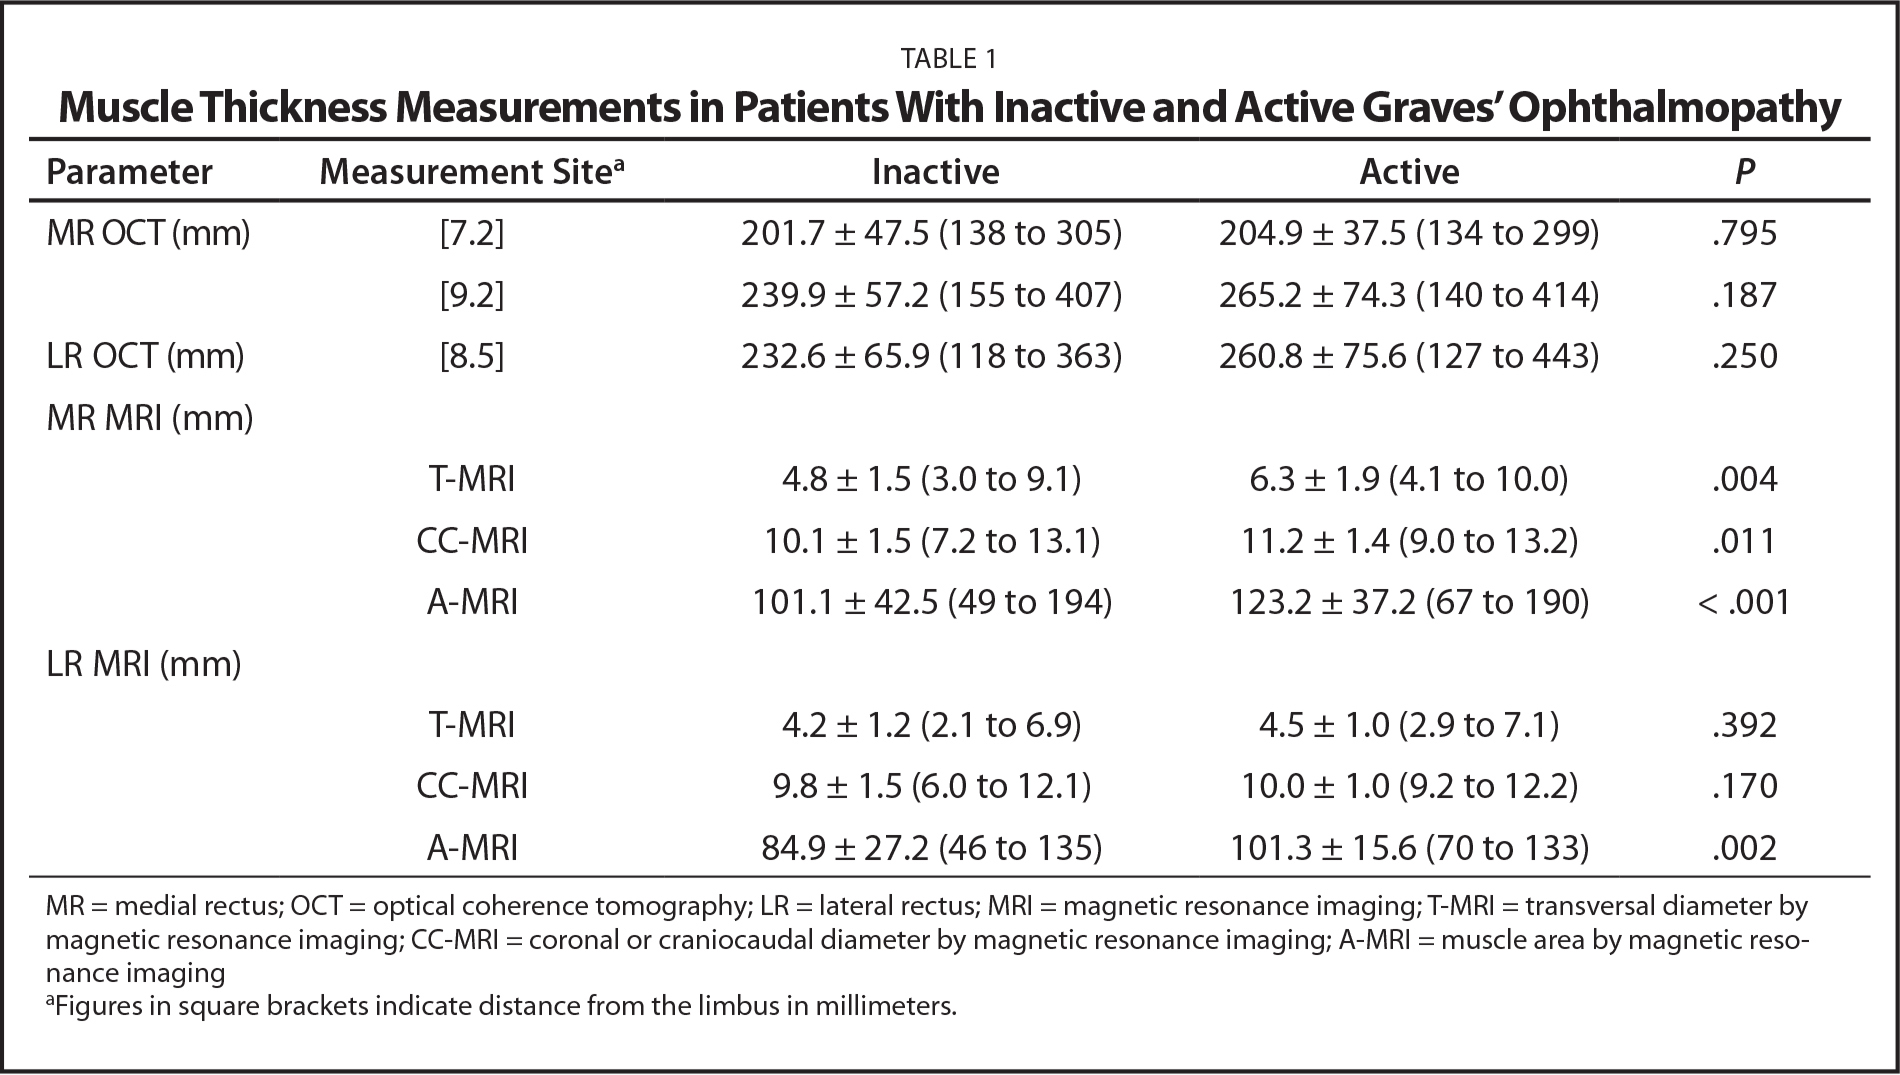 Muscle Thickness Measurements in Patients With Inactive and Active Graves' Ophthalmopathy